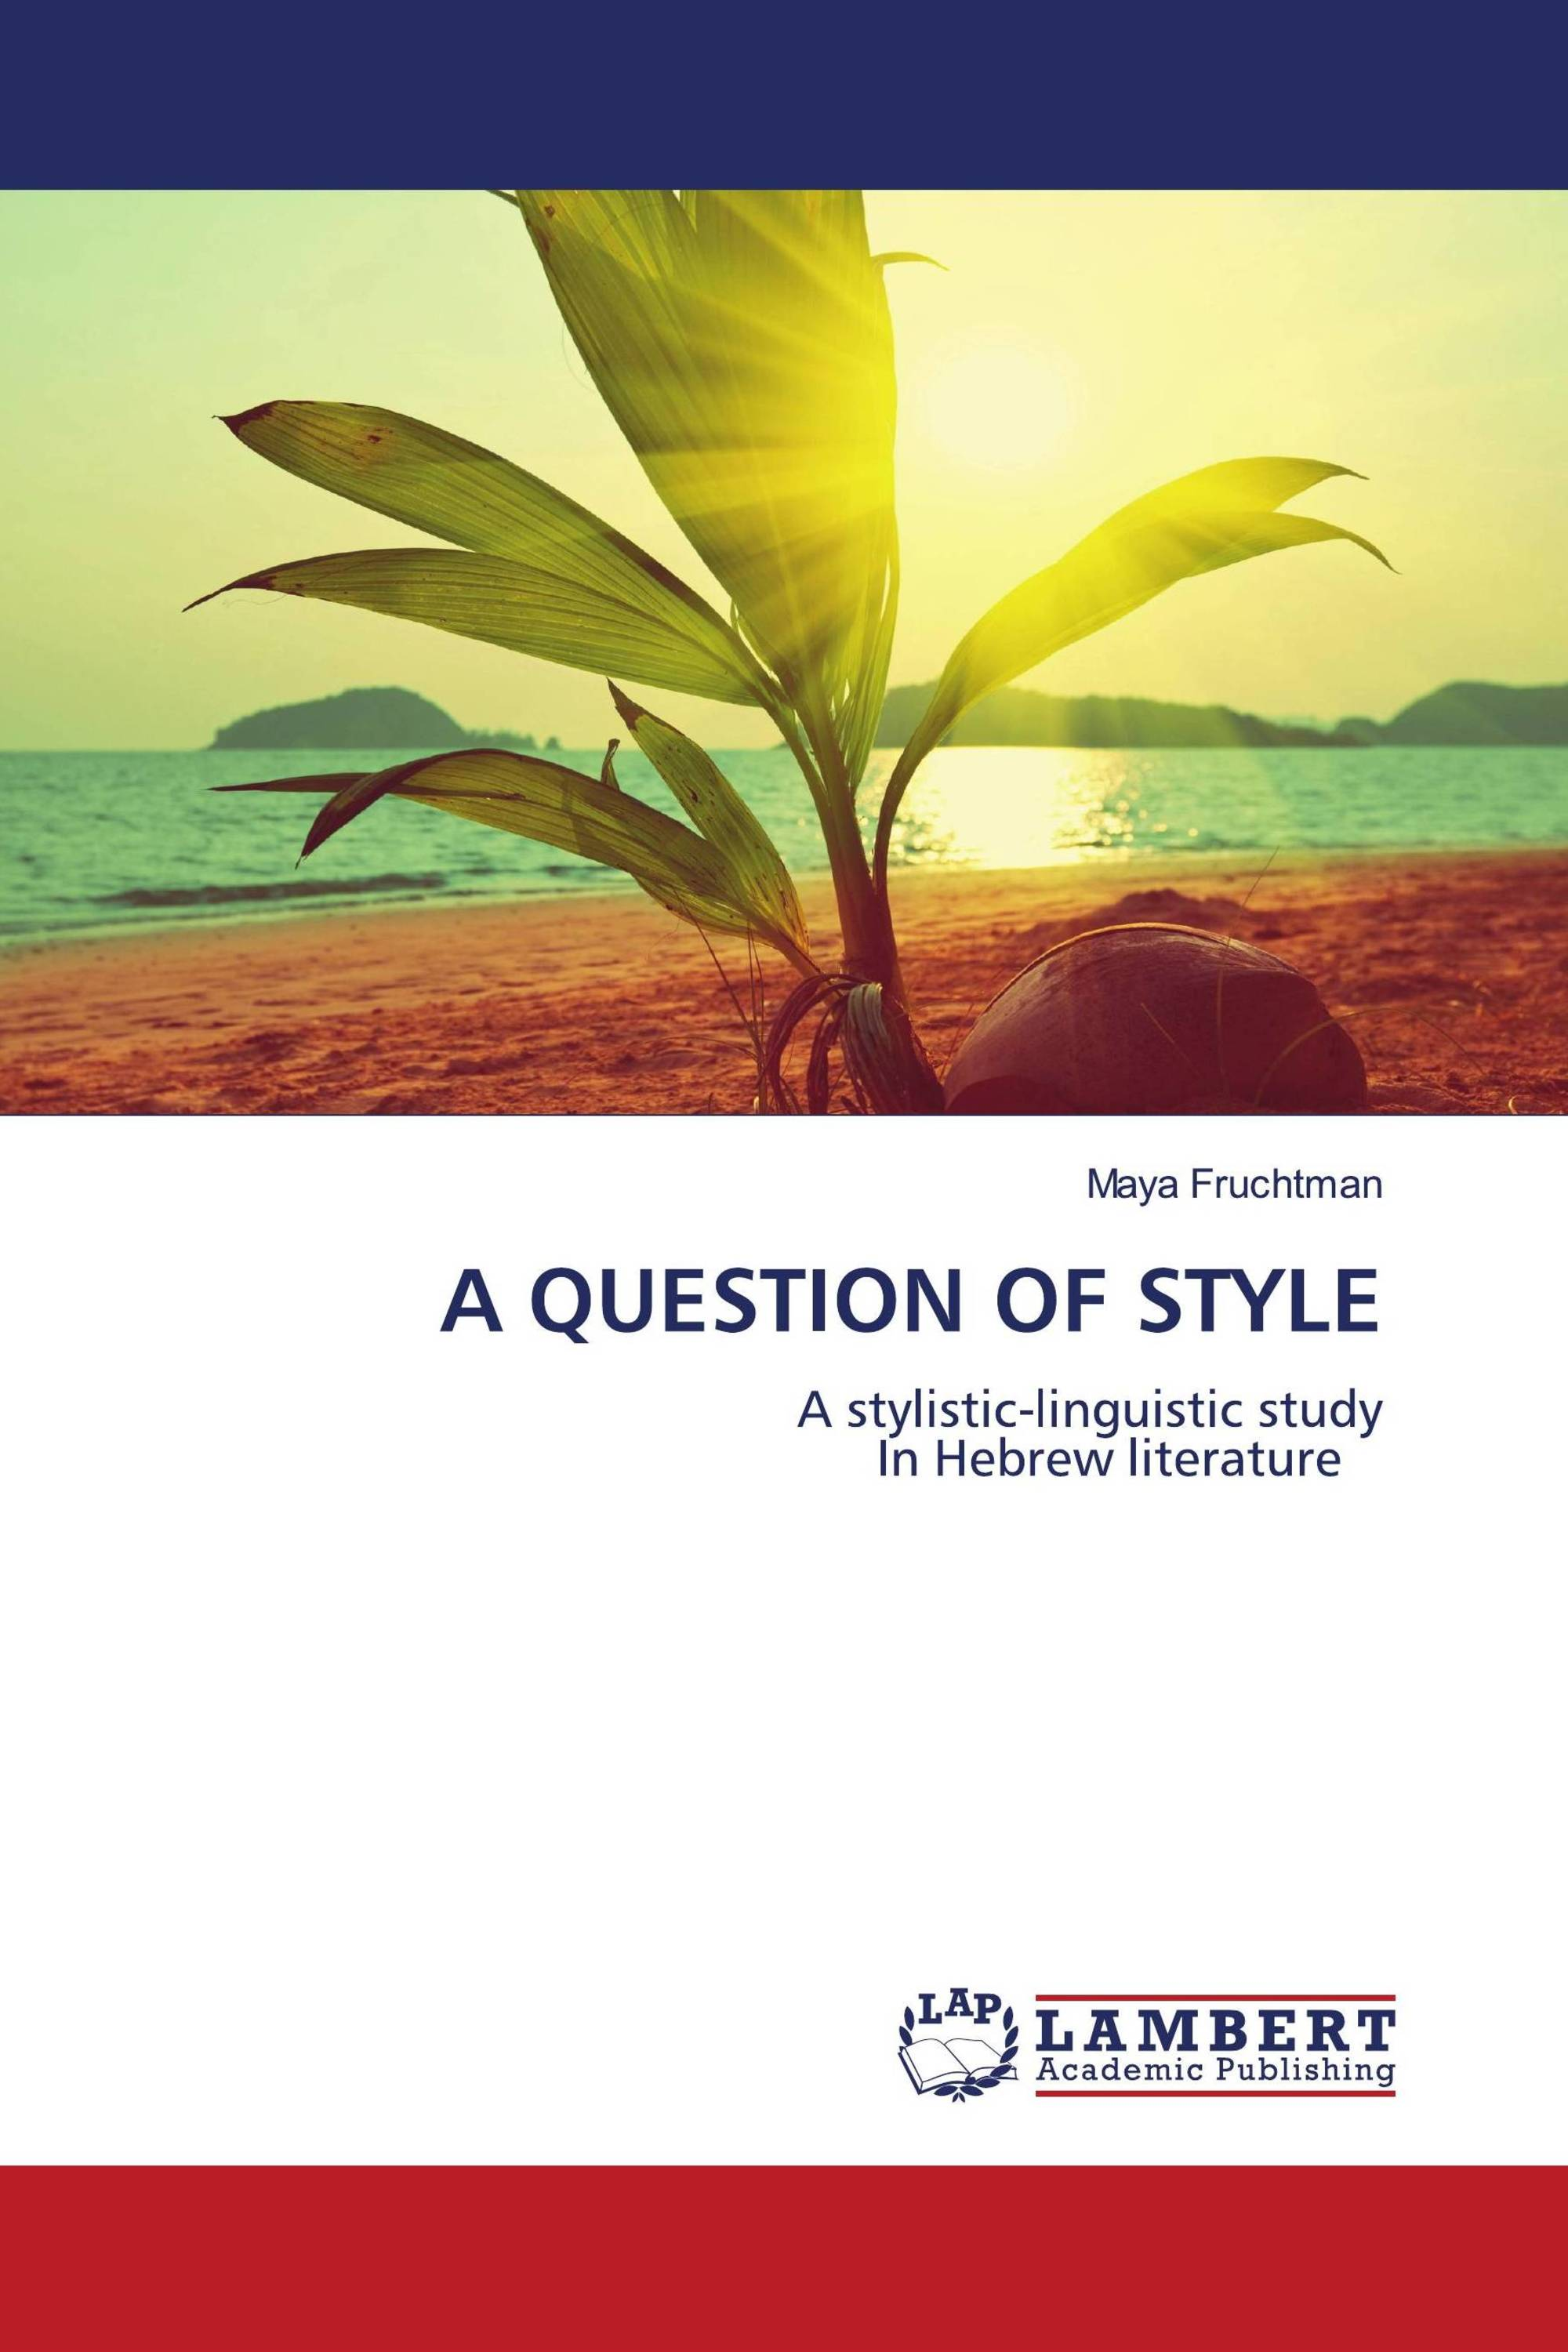 A QUESTION OF STYLE